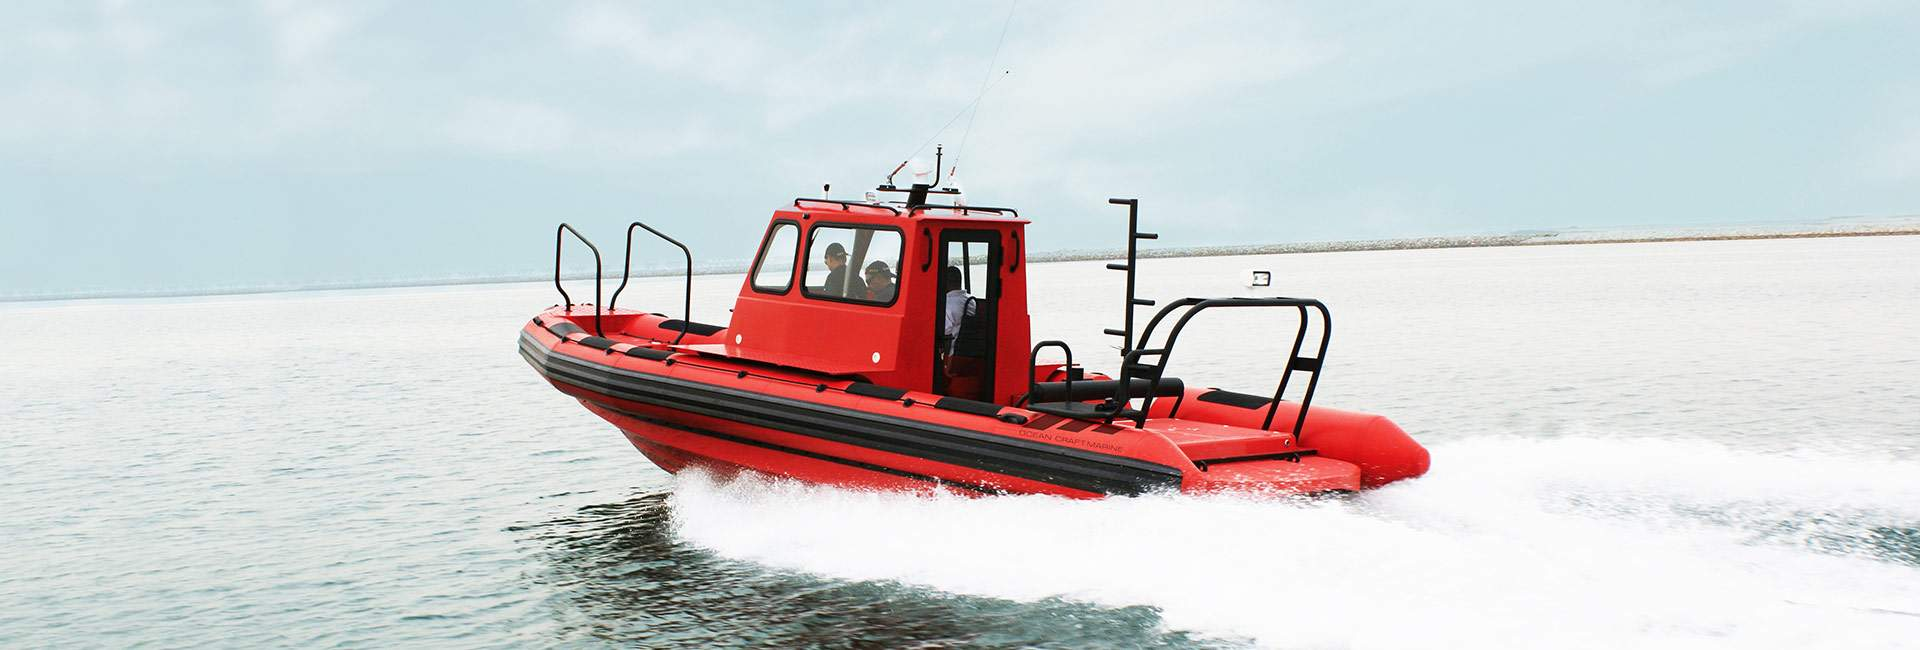 inflatable rescue boats for sale